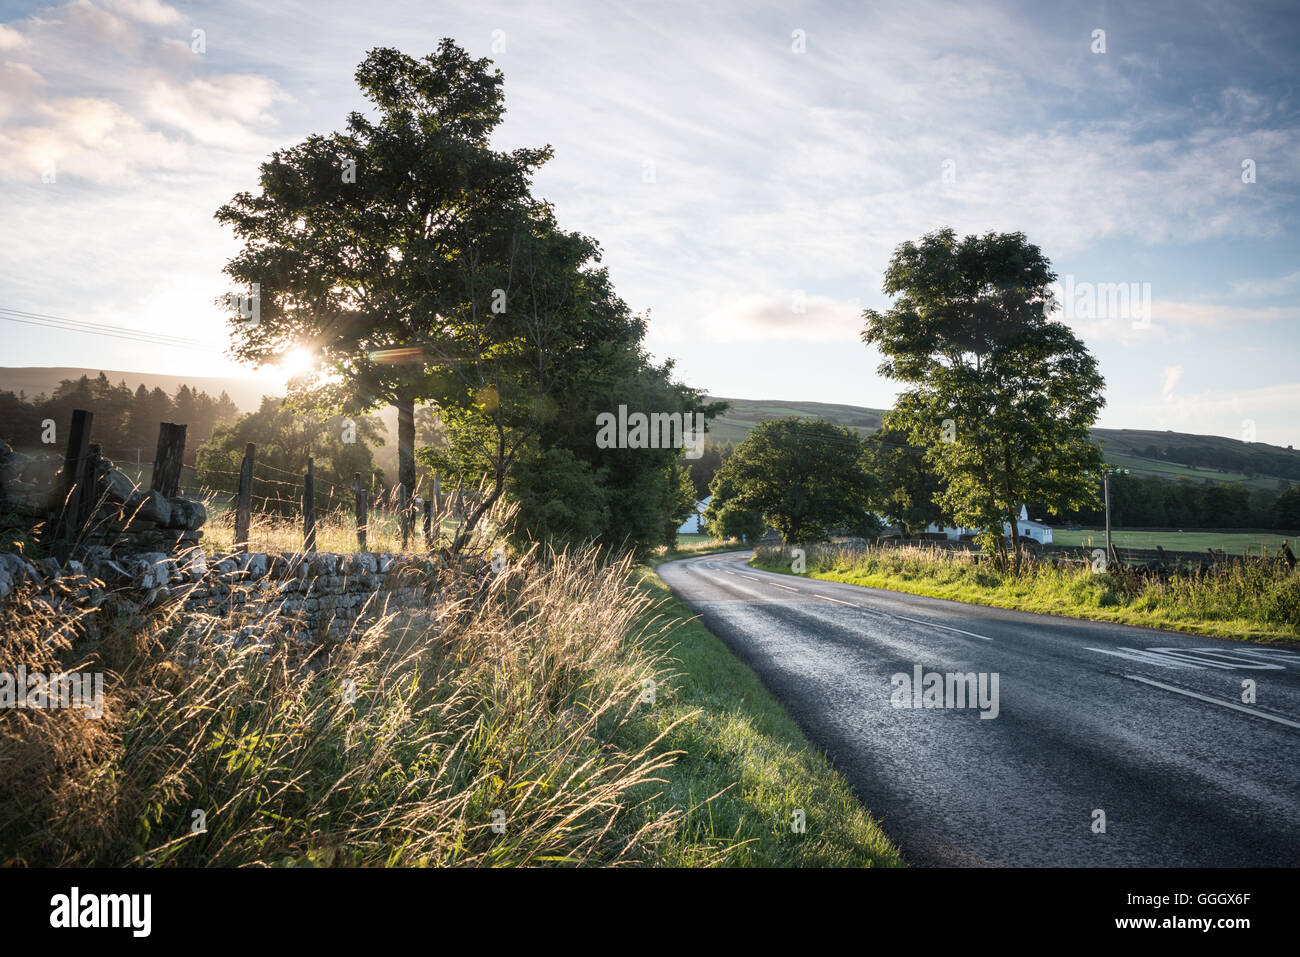 Teesdale, near Forest-in-Teesdale, County Durham, UK - Stock Image